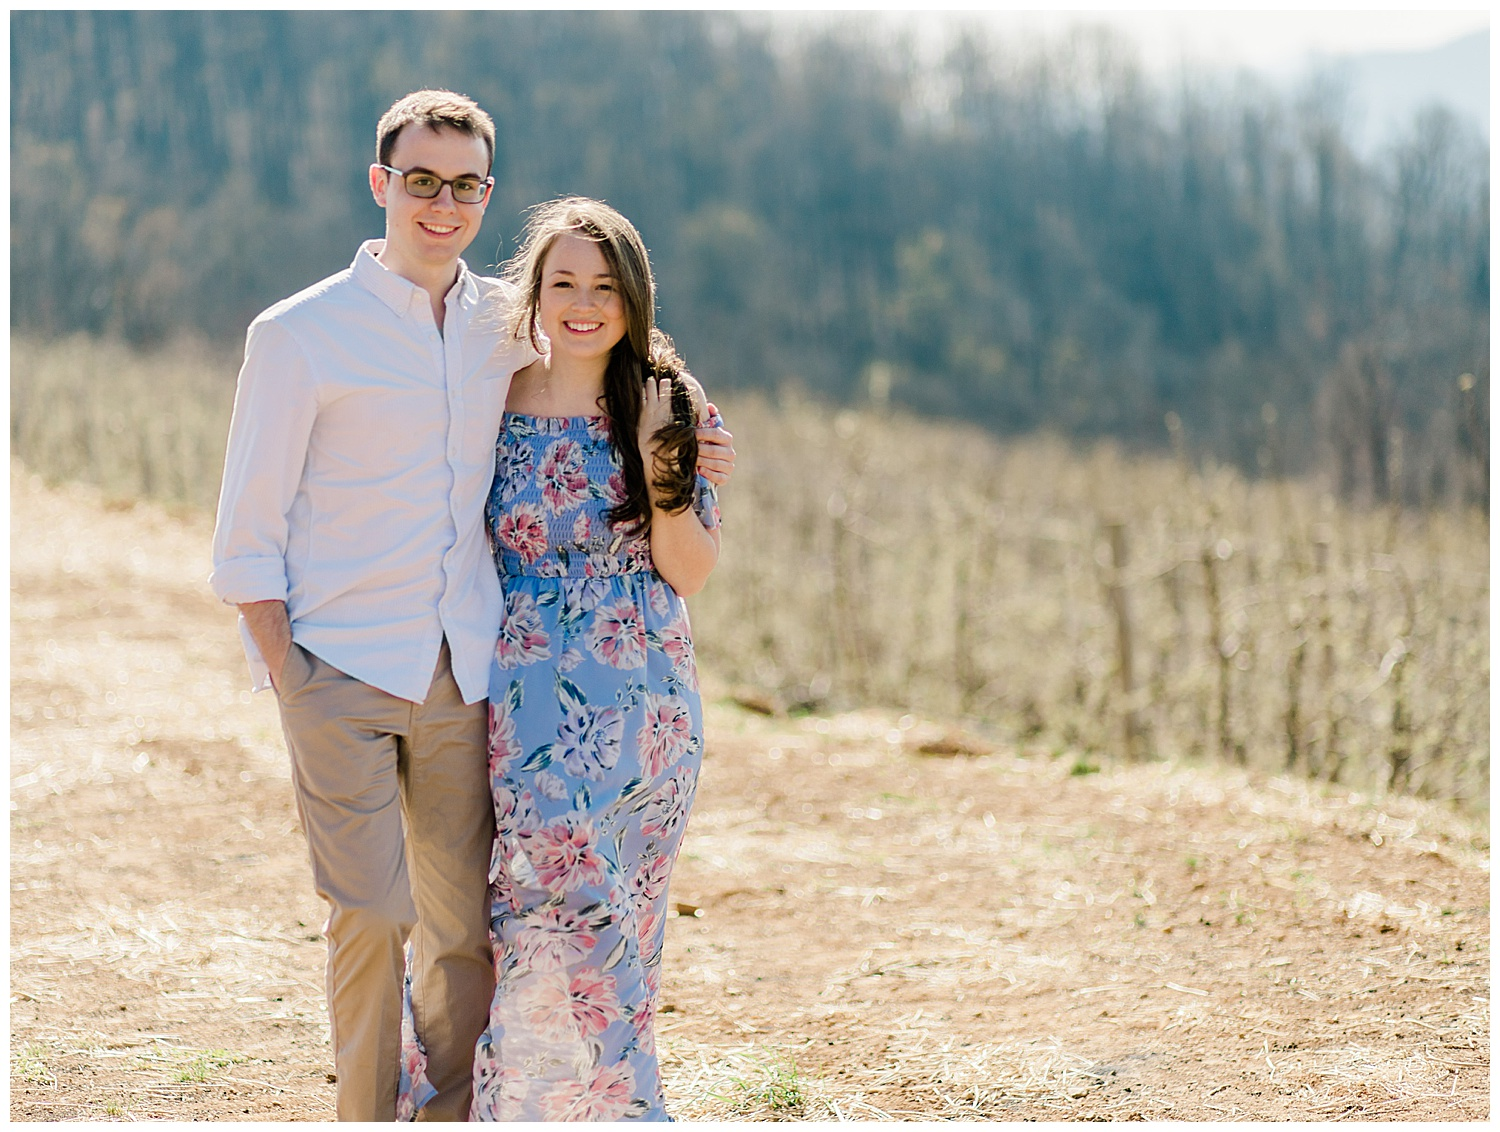 Carter Mountain Engagement Photography in Charlottesville, VA